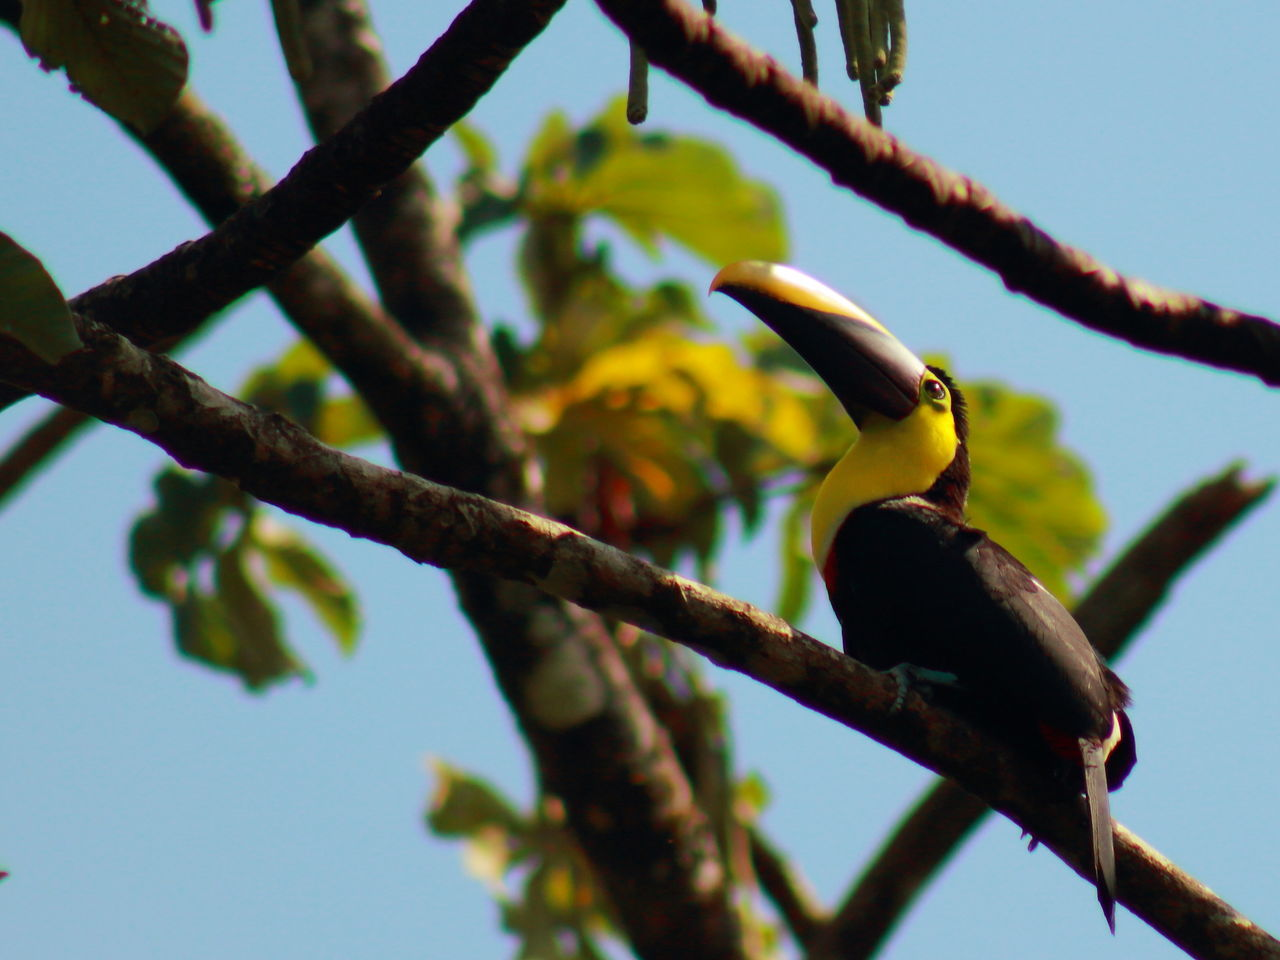 Tucan. Animal Themes Animals In The Wild Beauty In Nature Bird Branch Close-up Costa Rica Day EyeEm Animal Lover EyeEm Best Shots EyeEm Best Shots - Nature EyeEm Gallery EyeEm Nature Lover Focus On Foreground Low Angle View Nature No People One Animal Outdoors Perching Tourism Travel Travel Destinations Tree Tucan